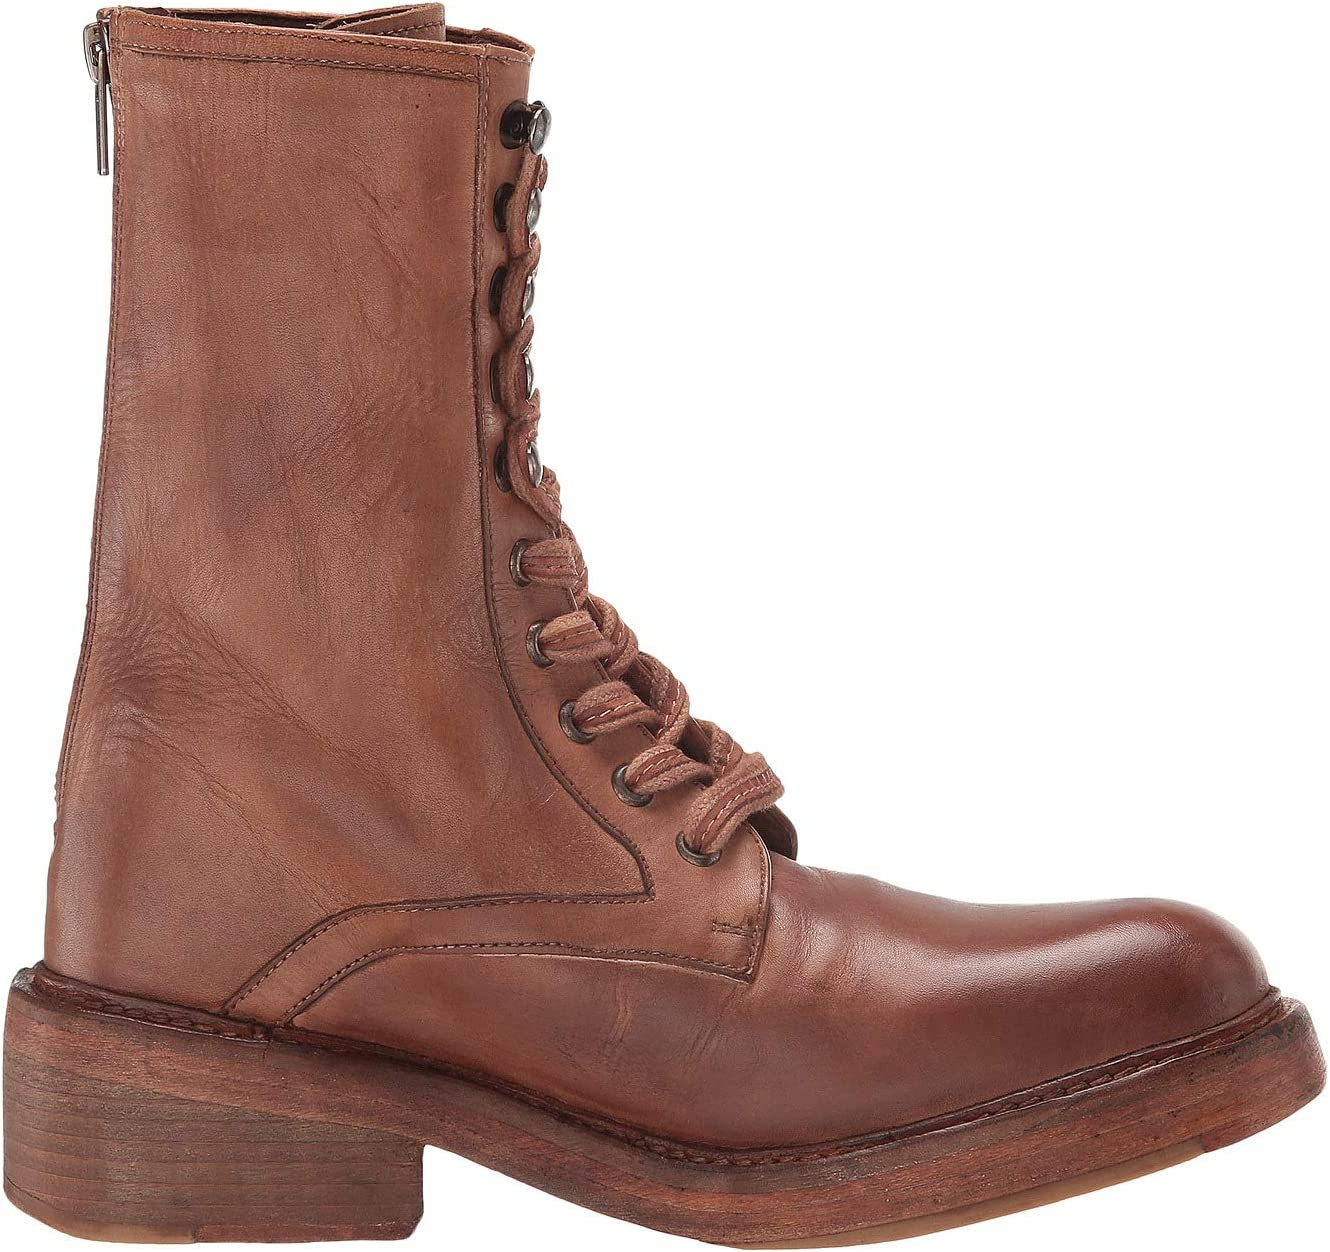 Free People Santa Fe Lace-Up Boot | Women's shoes | 2020 Newest